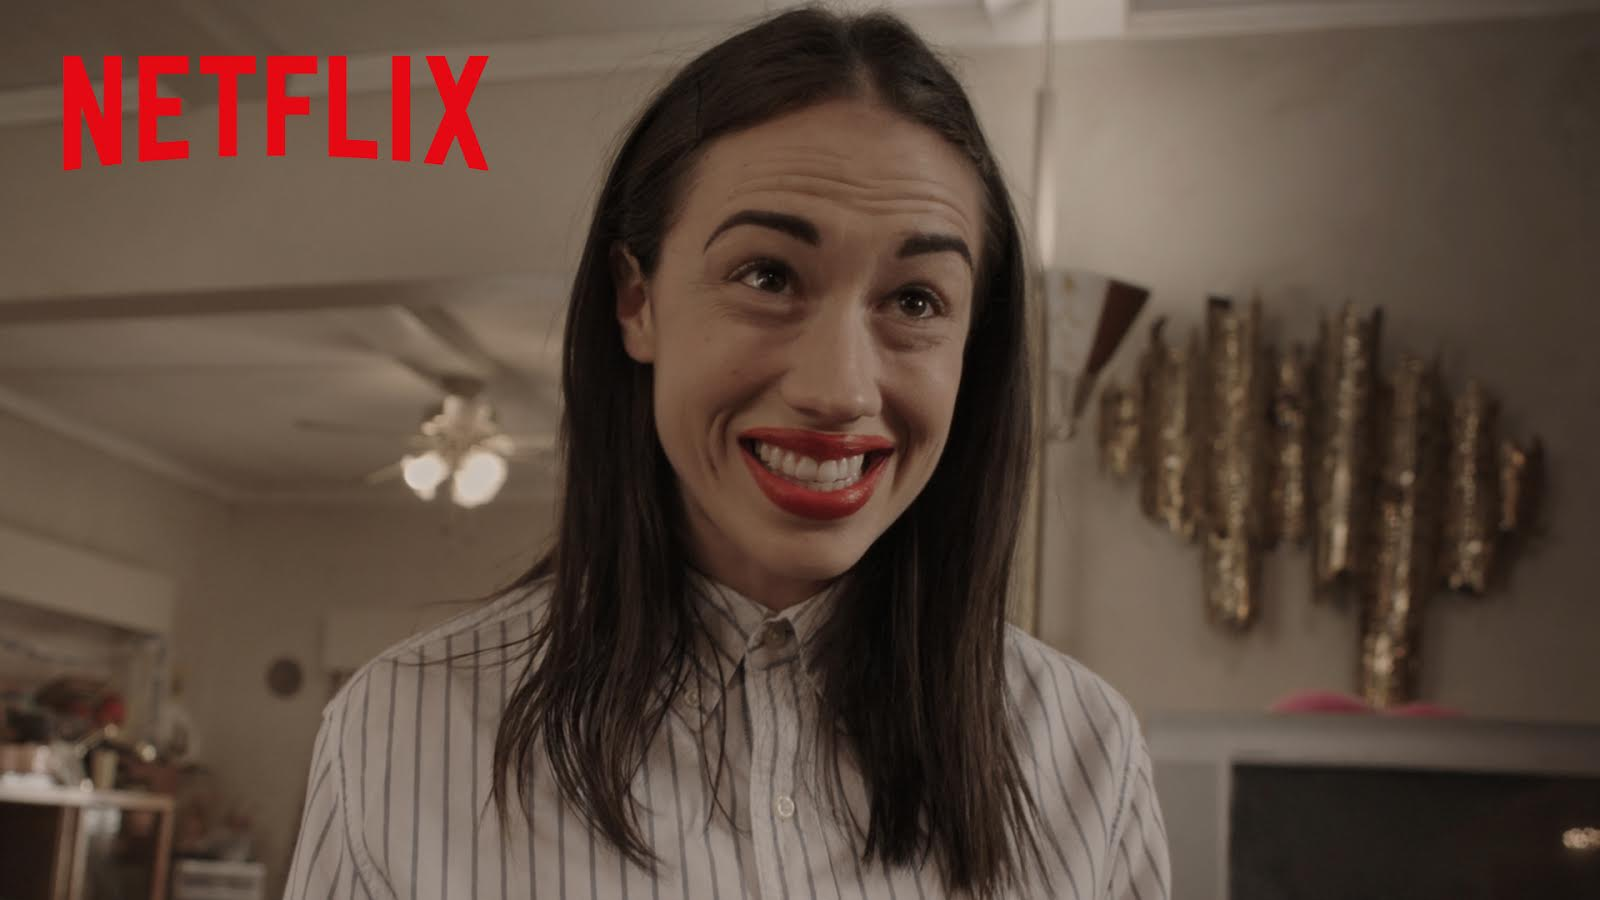 Why be a star, when you can be a legend?���� SEASON 2 TRAILER ALERT �� #HatersBackOff #Oct20 https://t.co/rG75WvKXnG